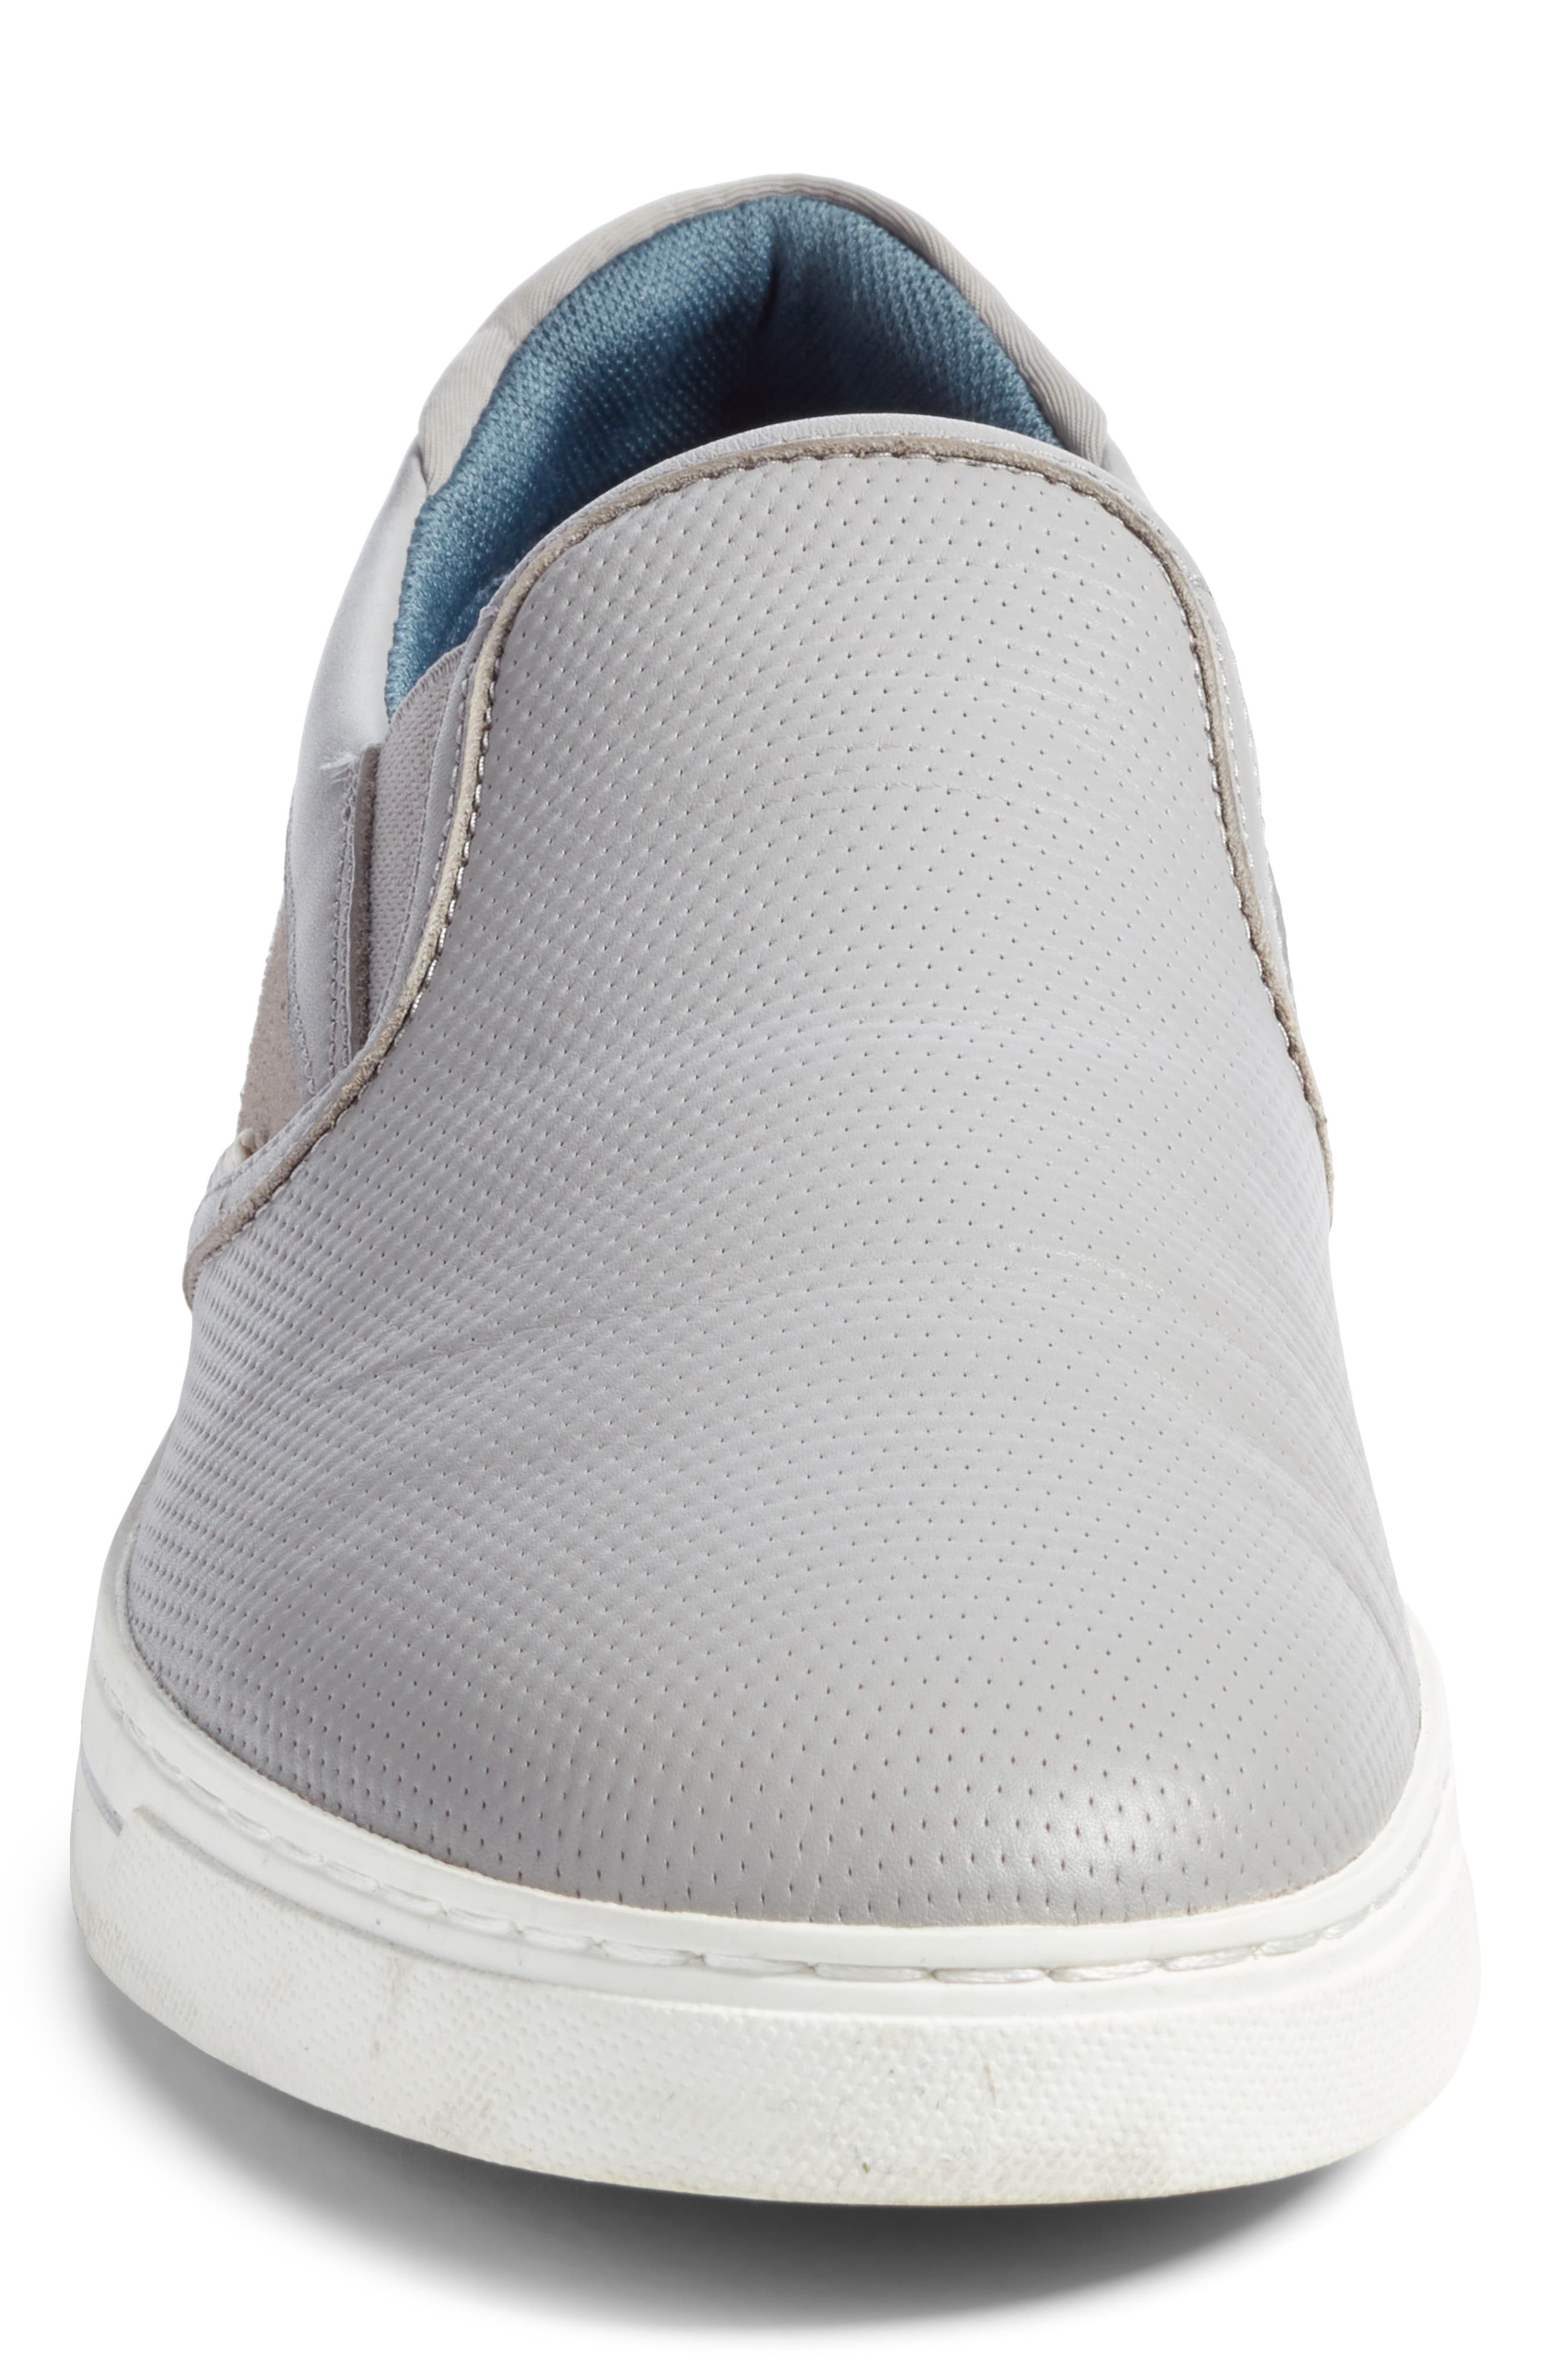 Patroy Perforated Slip-On Sneaker,                             Alternate thumbnail 4, color,                             LIGHT GREY LEATHER